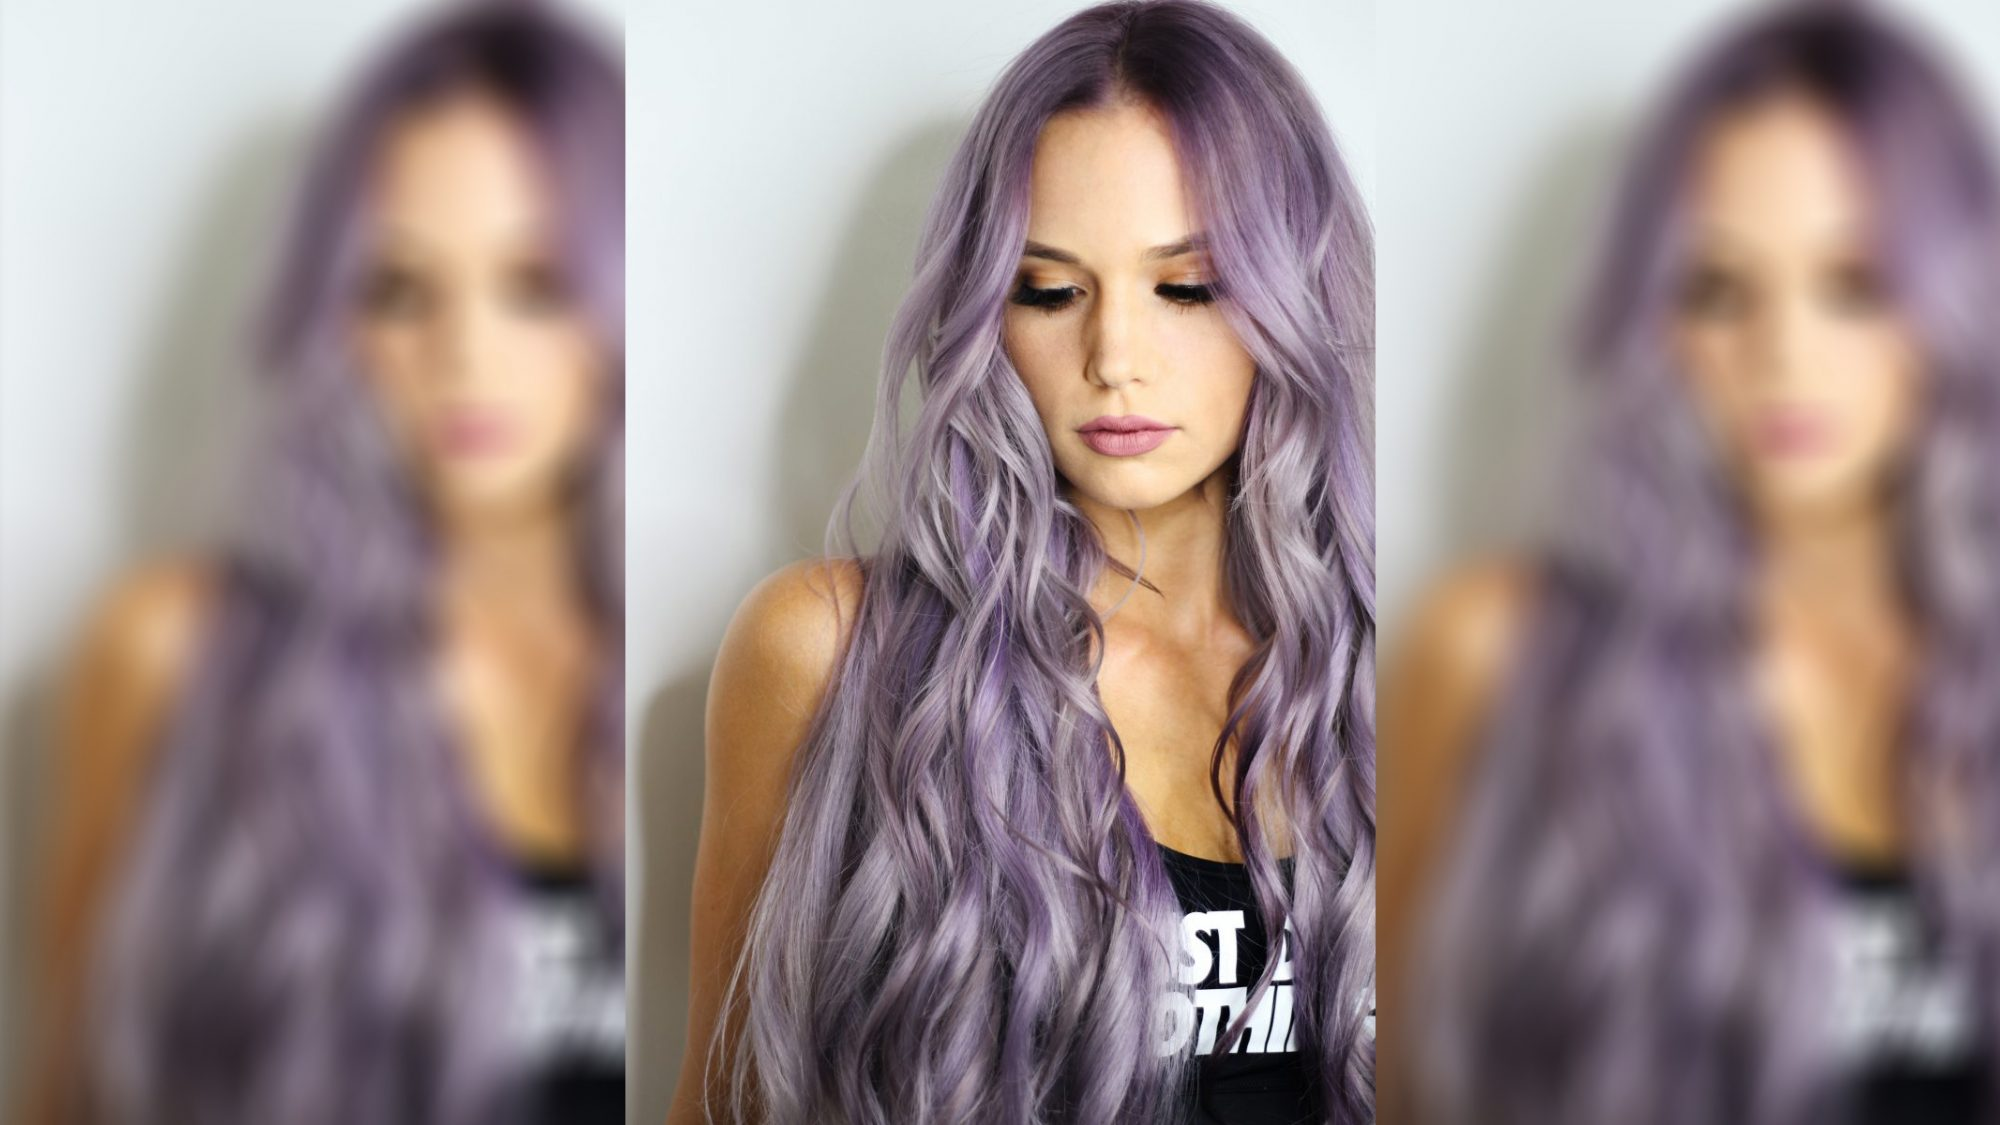 Lavender Hair Is the Unexpected Beauty Trend We Can't Get Enough Of